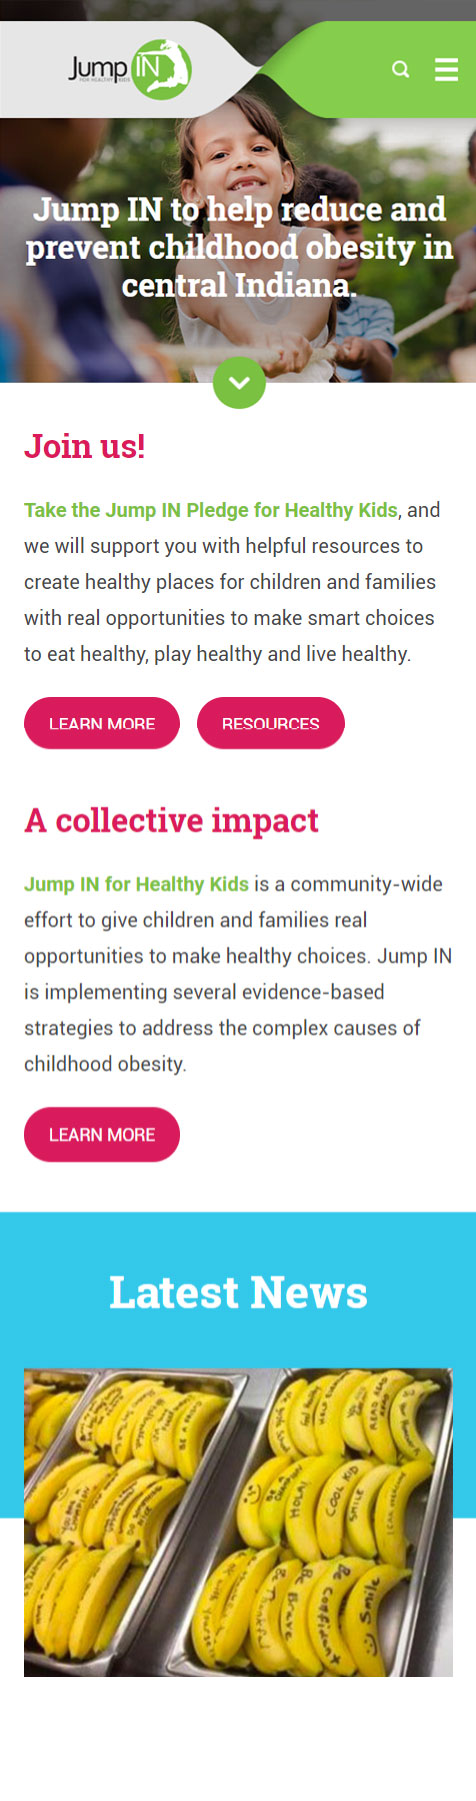 Jump In for Healthy Kids homepage mobile web design